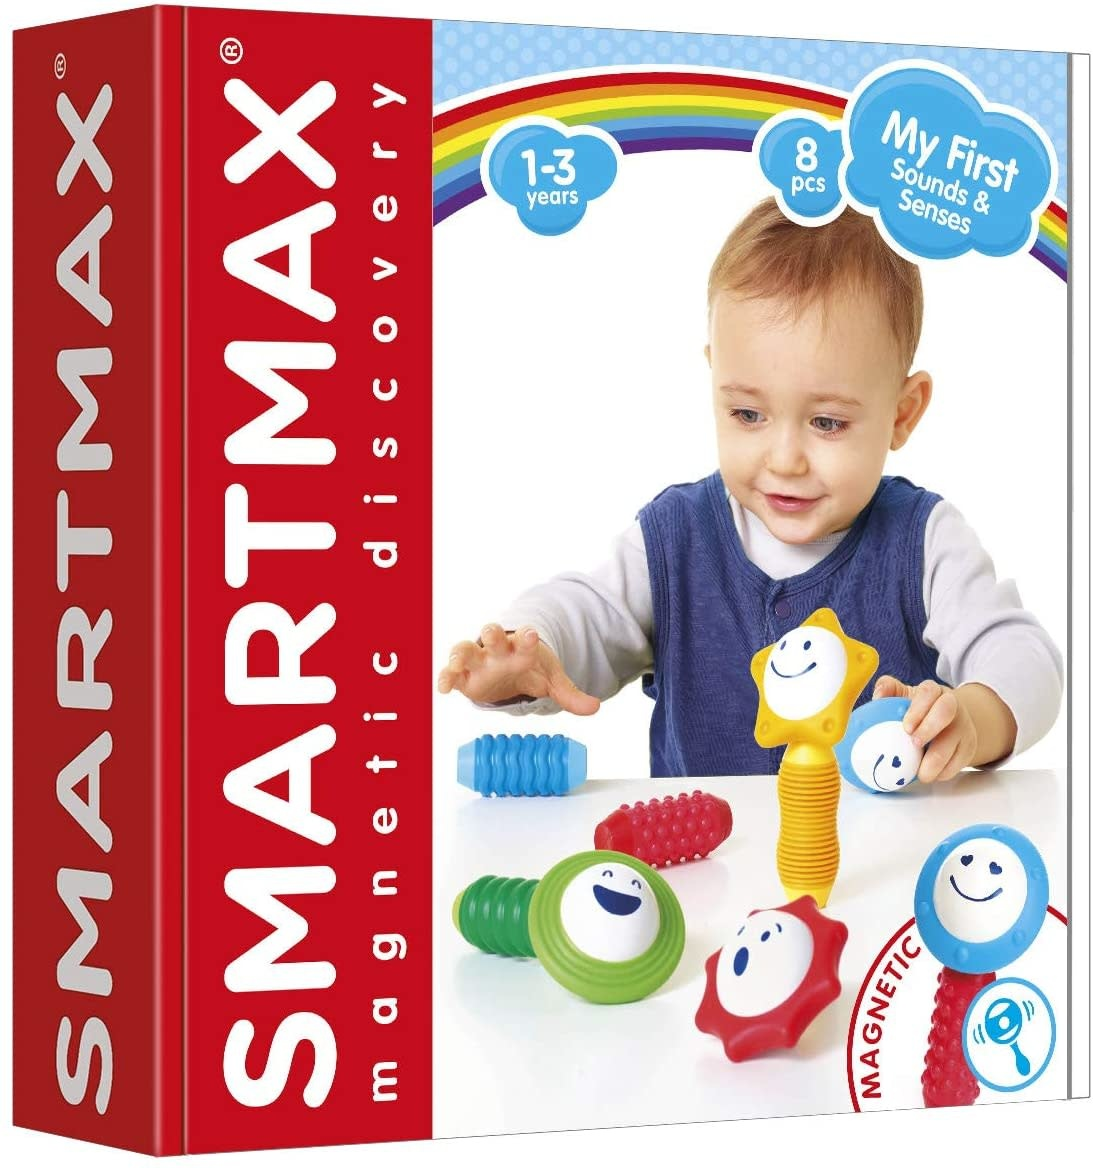 SmartMax My First Sounds & Senses Magnetic Building Kit